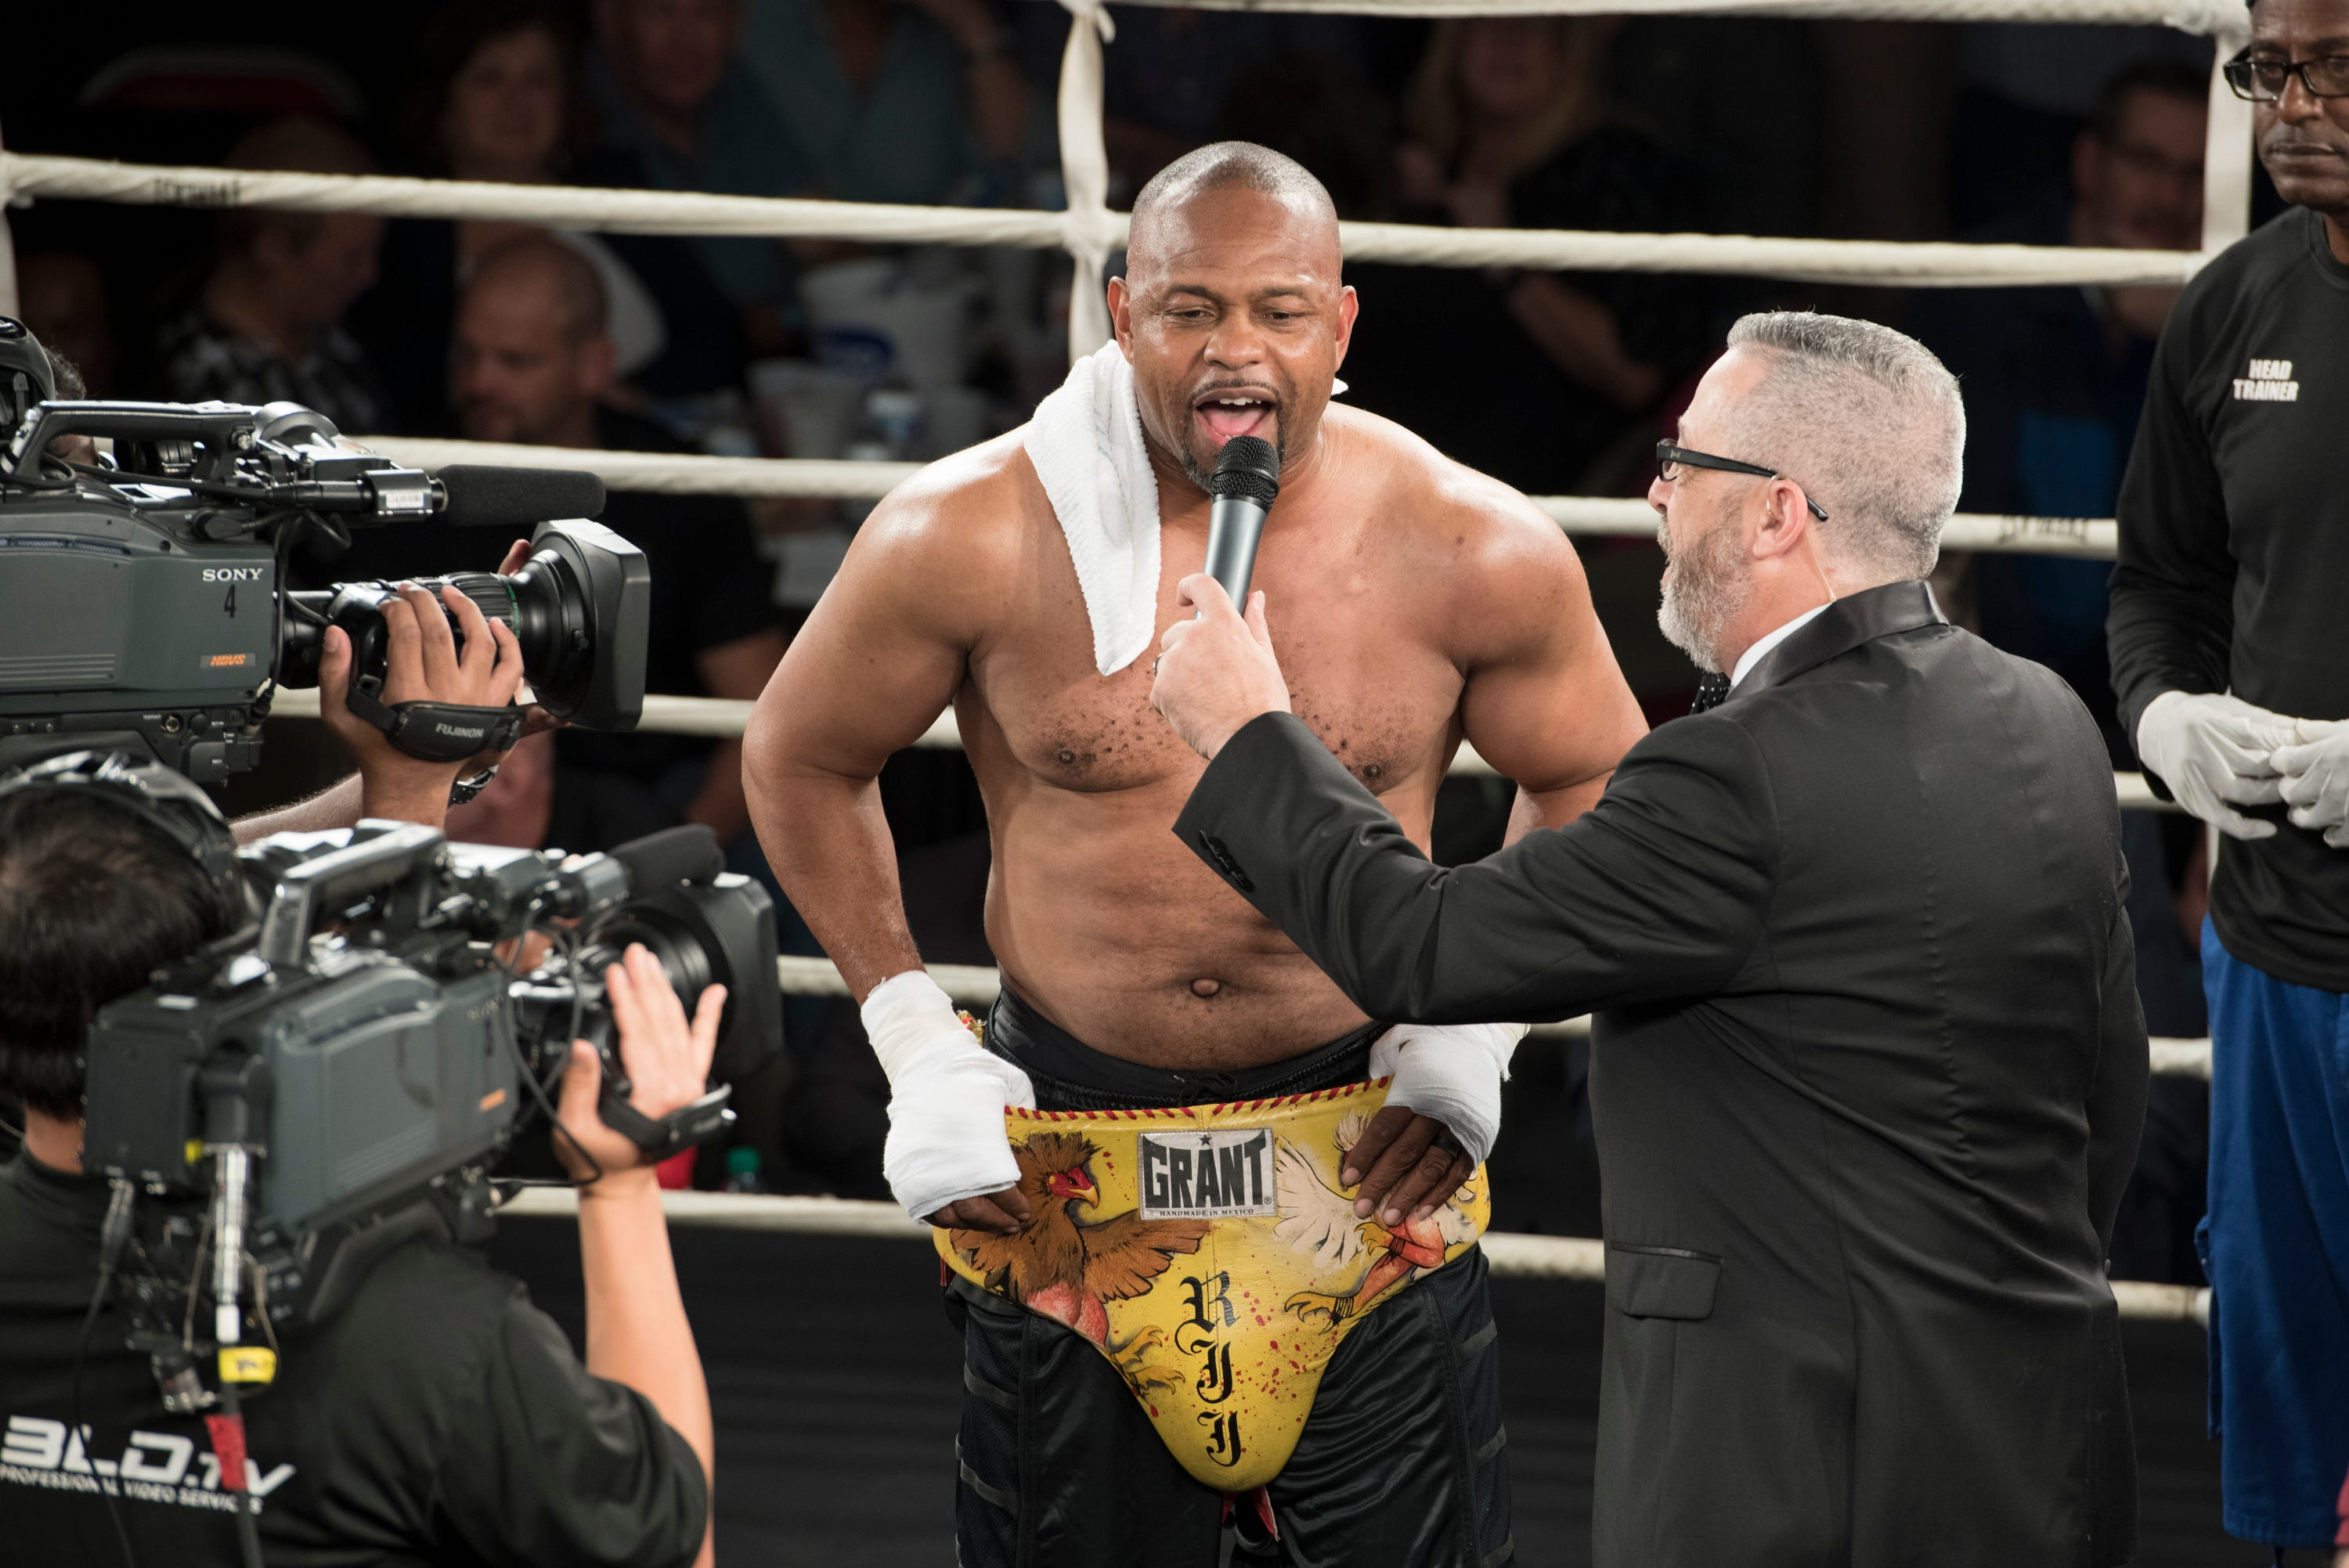 Roy Jones Jr. fights again in exhibition match at Island Fights 52